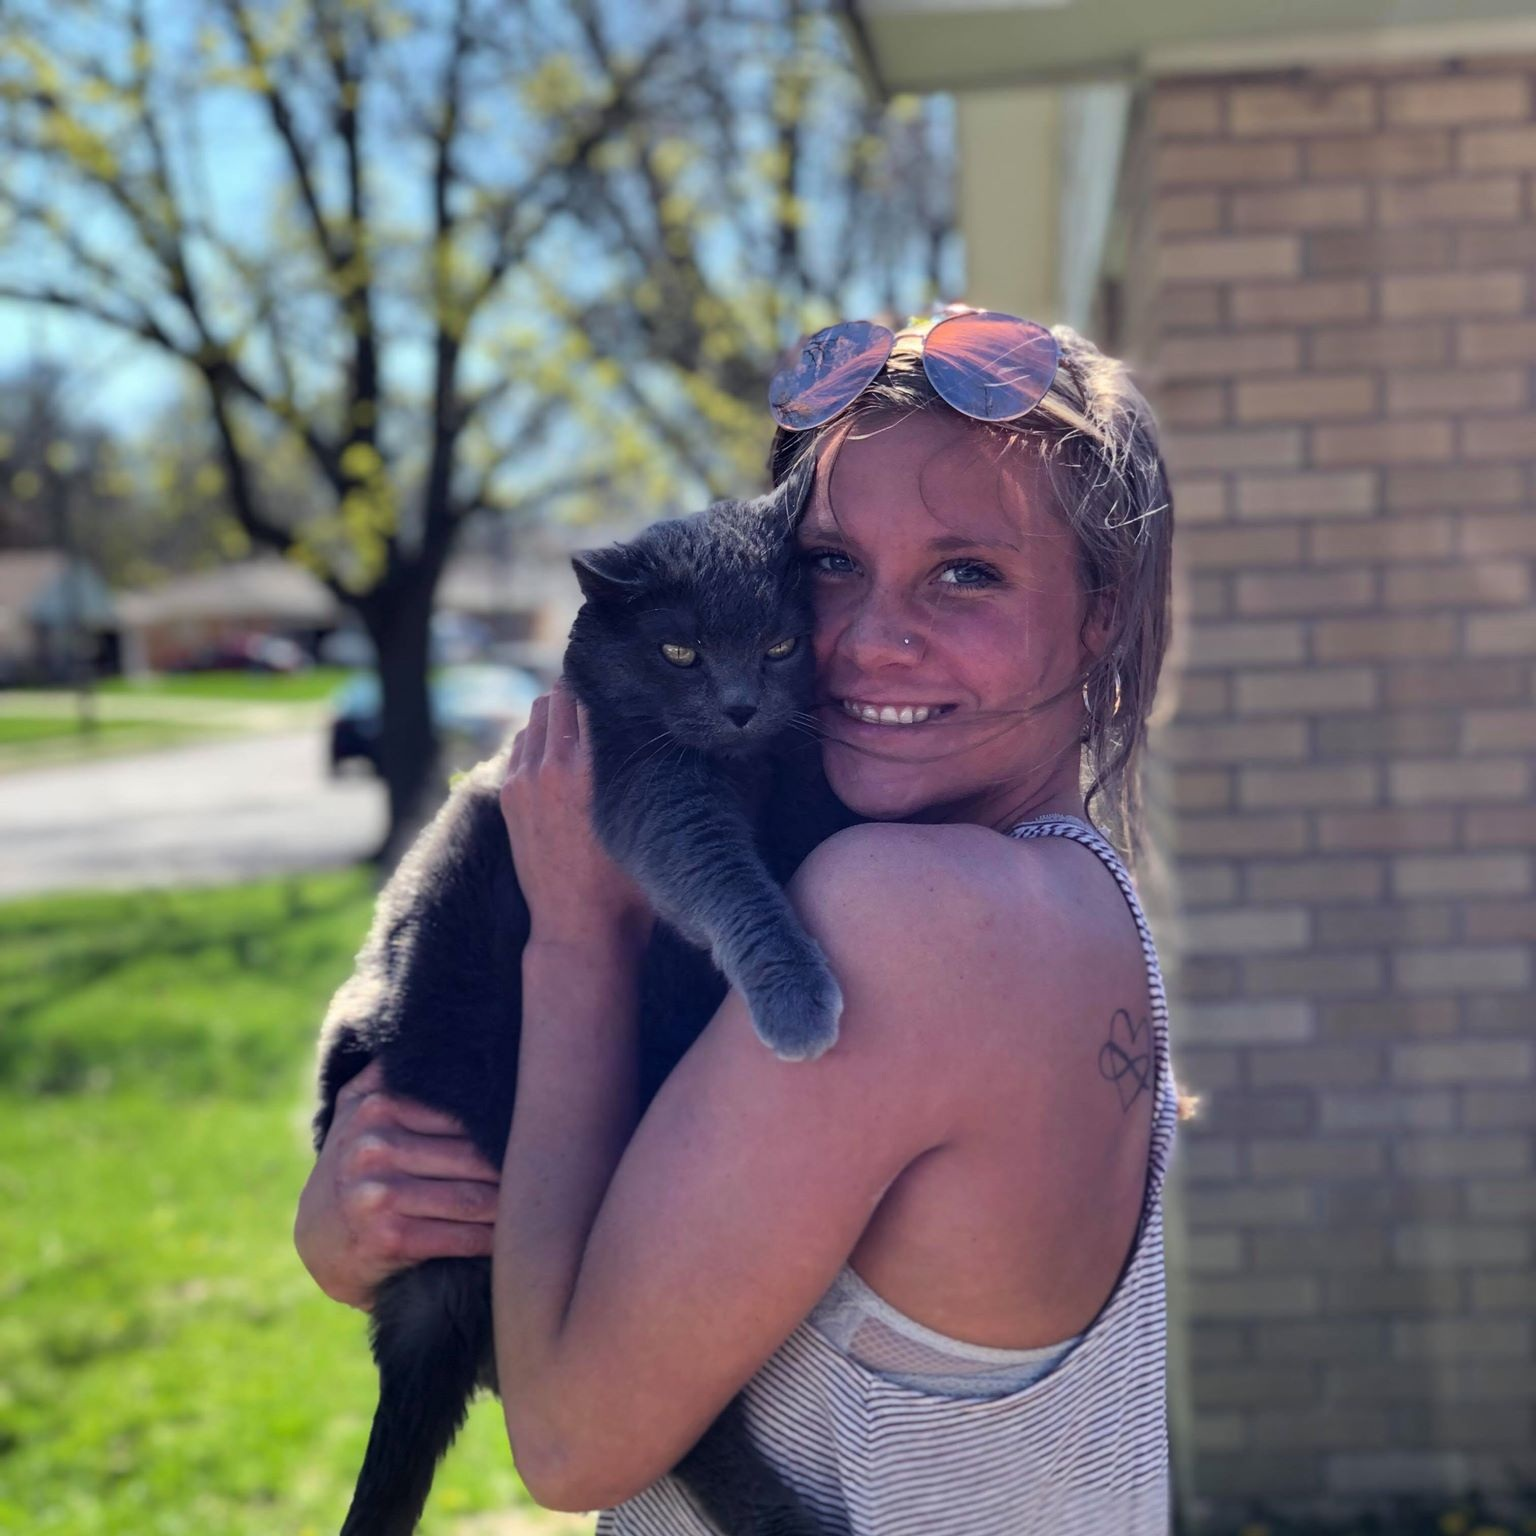 Baylee   Baylee joined us as an assistant in 2019. She has 4 brothers and graduated from Pekin High School in 2016. She is currently studying at Penn Foster College to become a Certified Veterinary Technician. She has a cat Mellow that was surrendered at Rescued Heart.